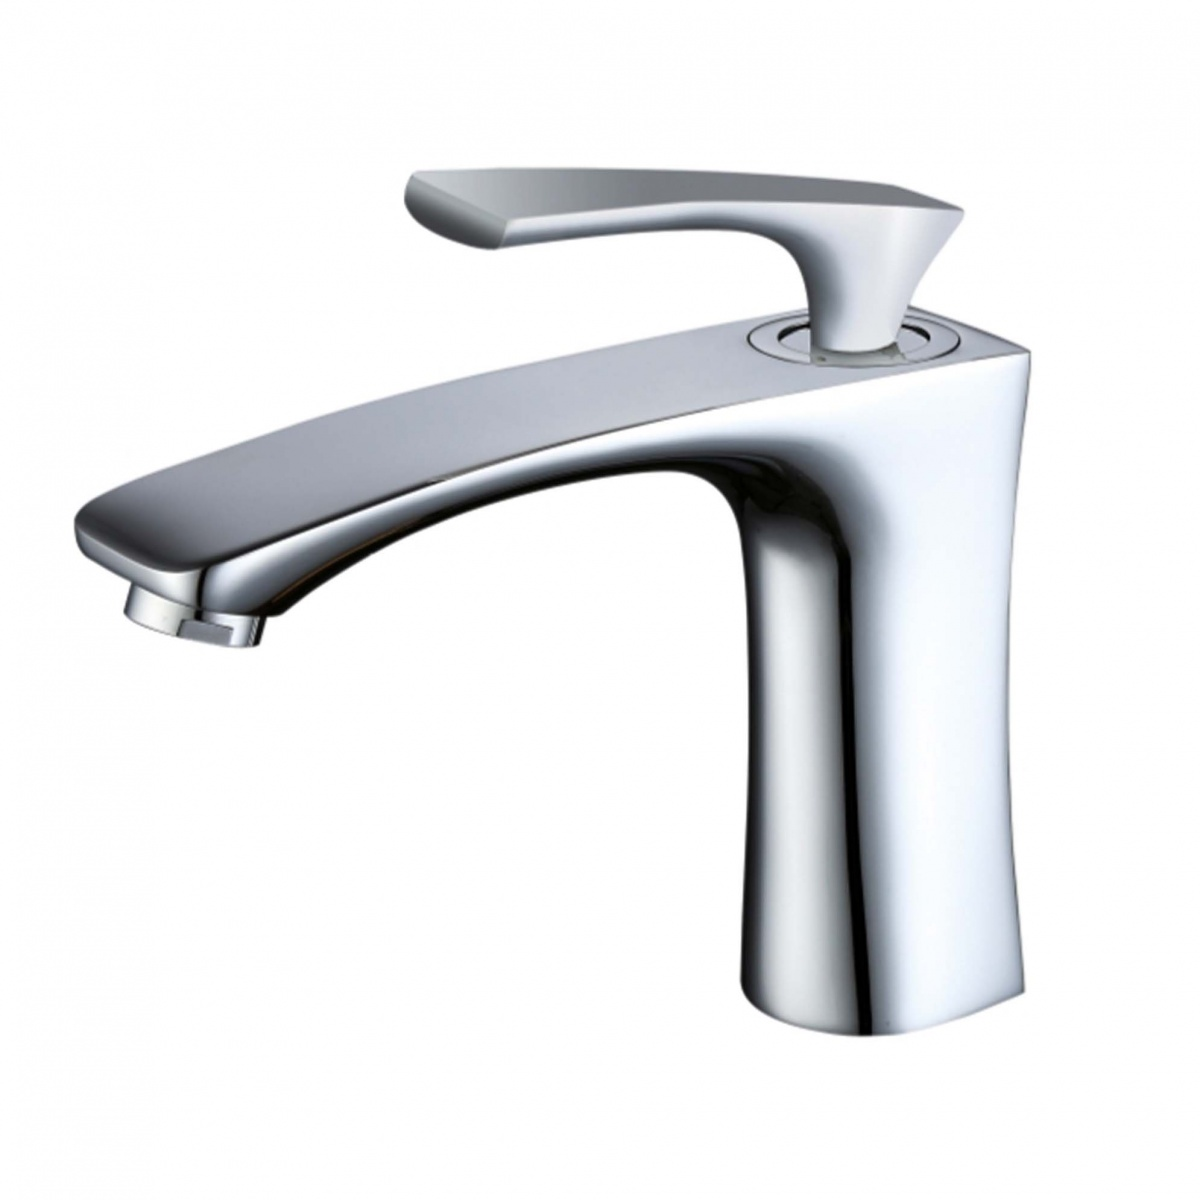 Single Handle Bathroom Sink Faucet Solid Brass Basin Mixer Taps